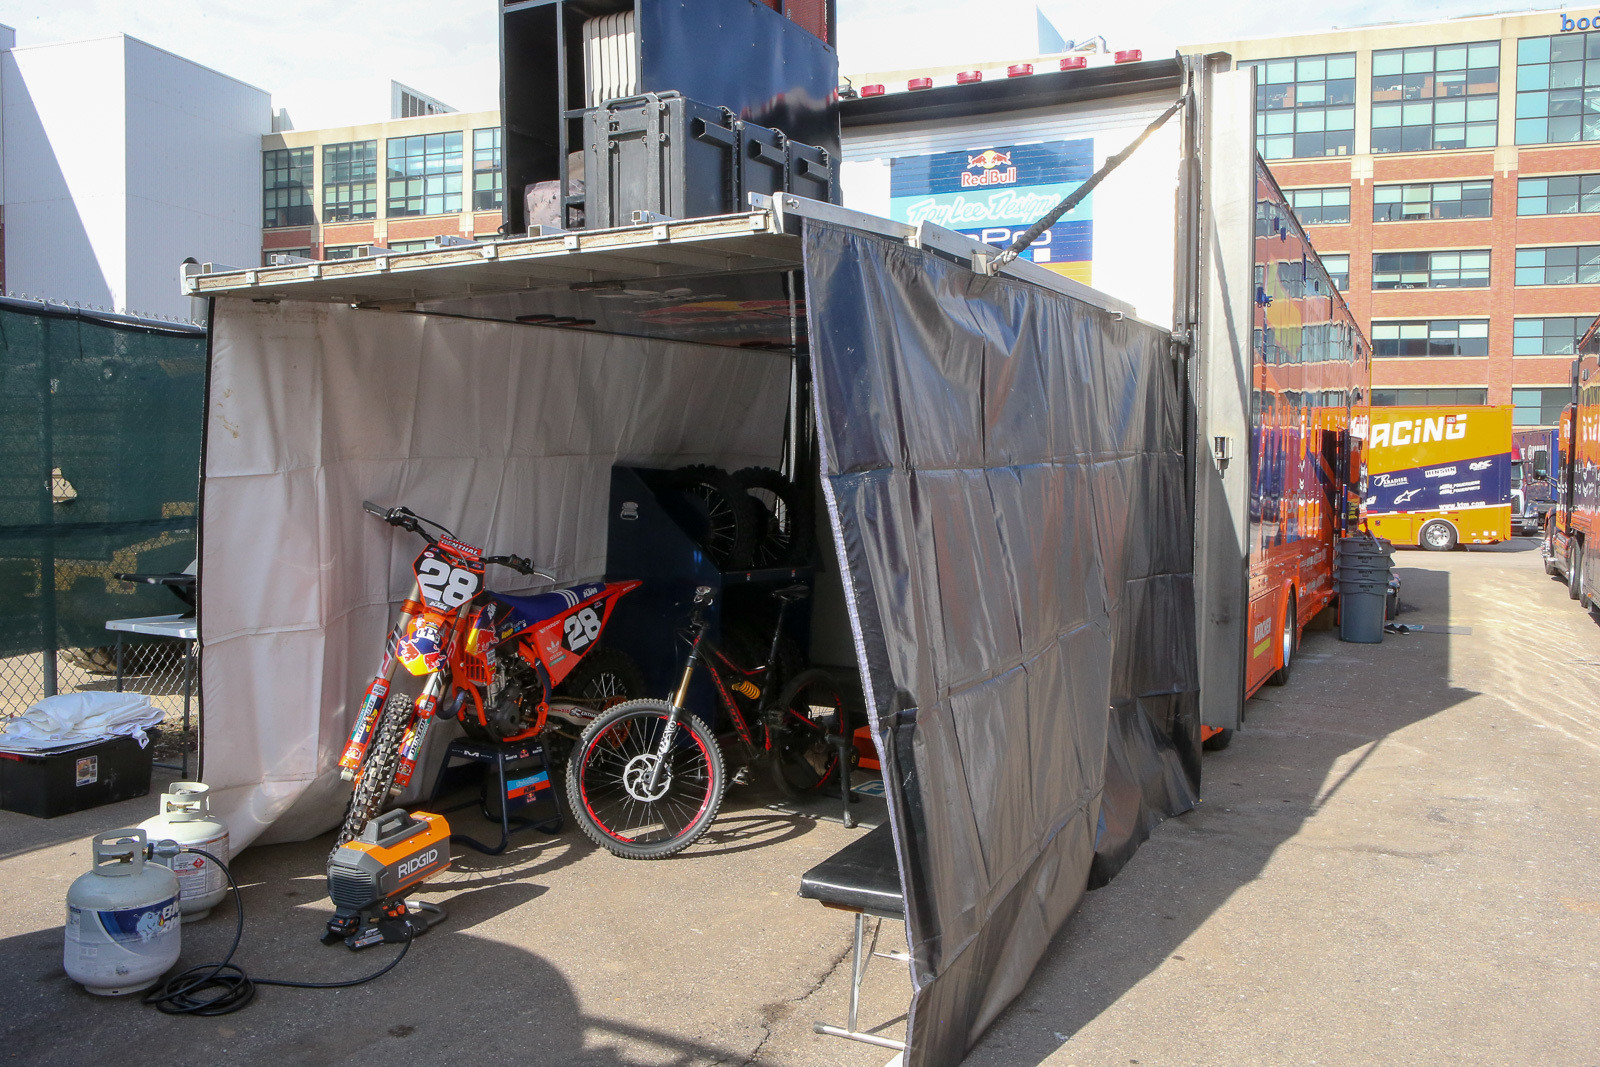 A few teams opted to pit in their trucks this weekend, including Jordon Smith and the Troy Lee Designs/Red Bull/KTM crew. More often in situations like this, you'll see them pitted in a tent off the back of the truck, leaving the inside free.